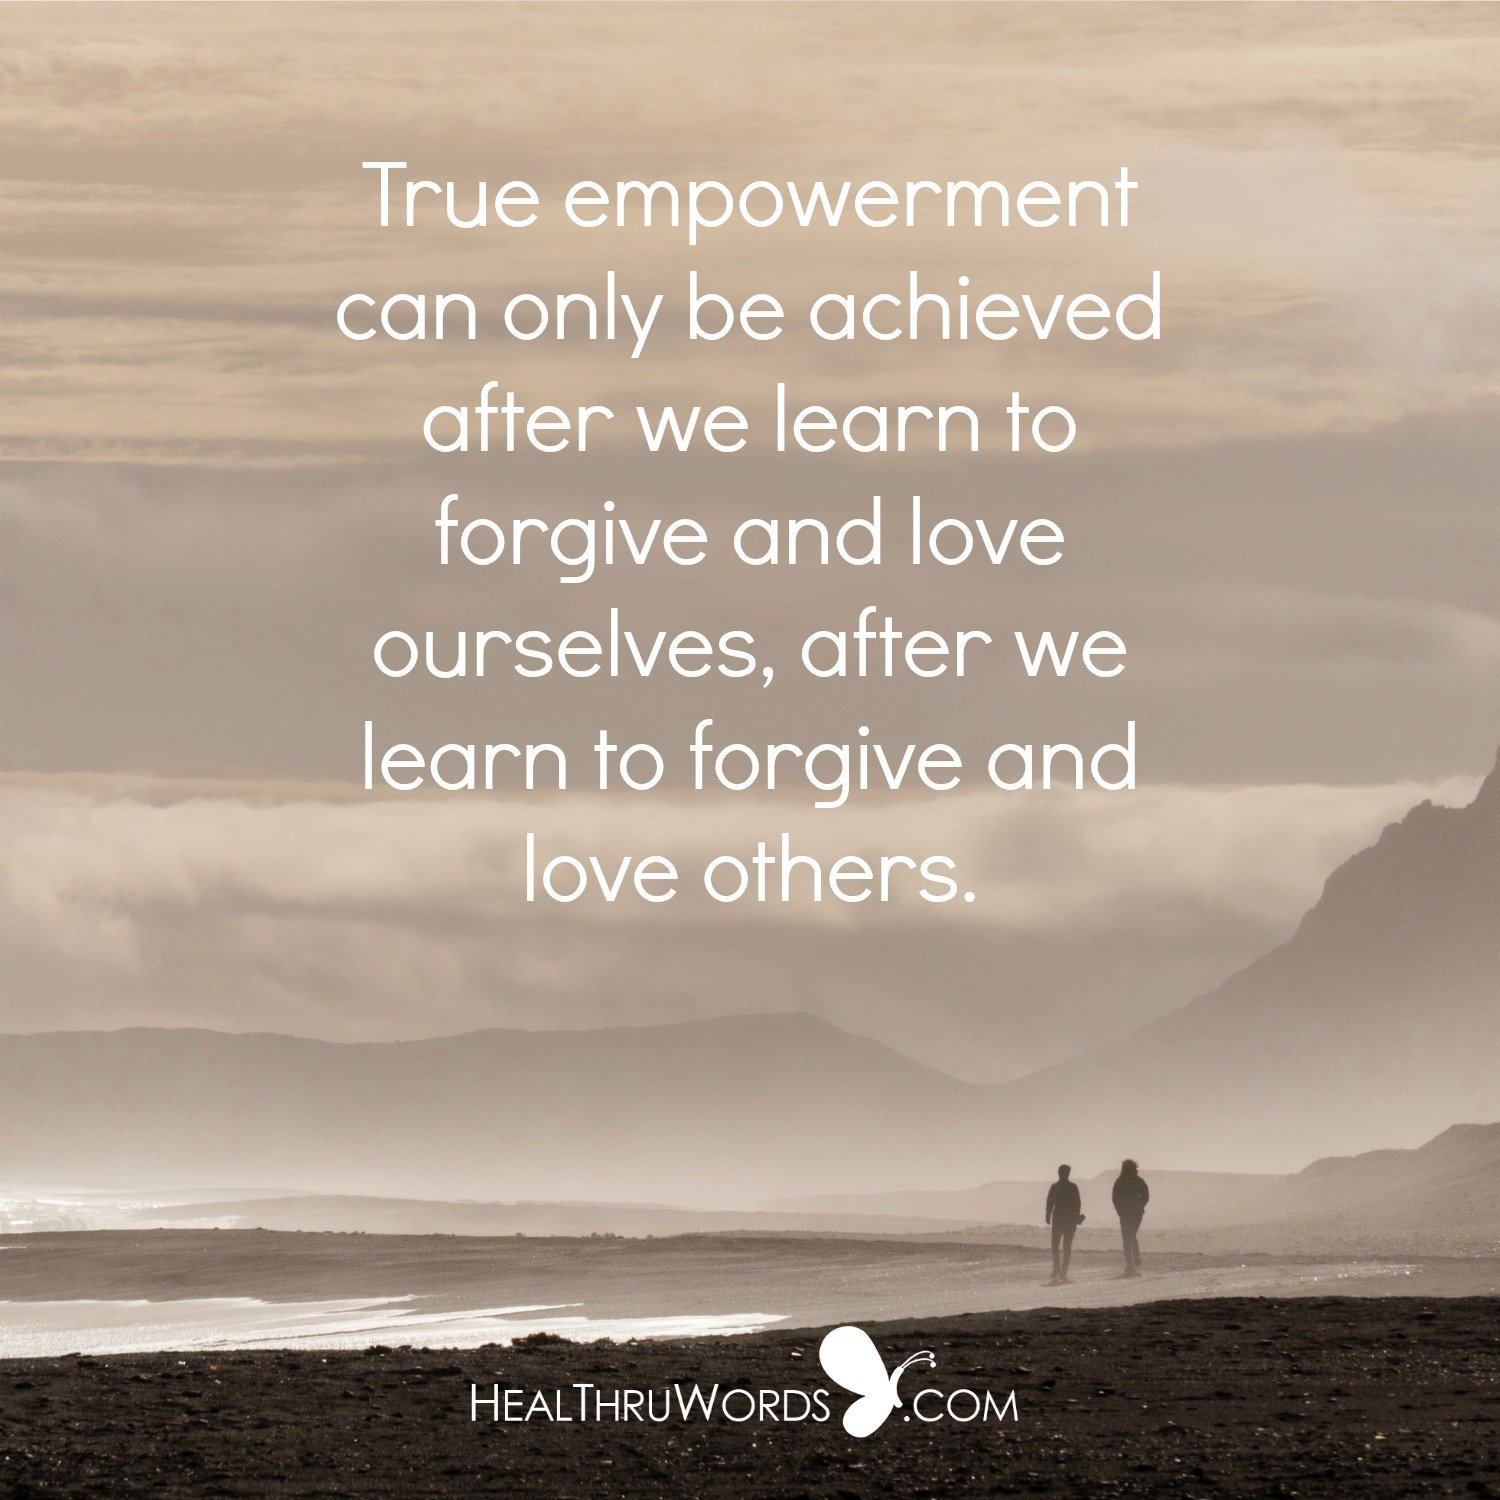 Inspirational Image: Forgiveness is Power